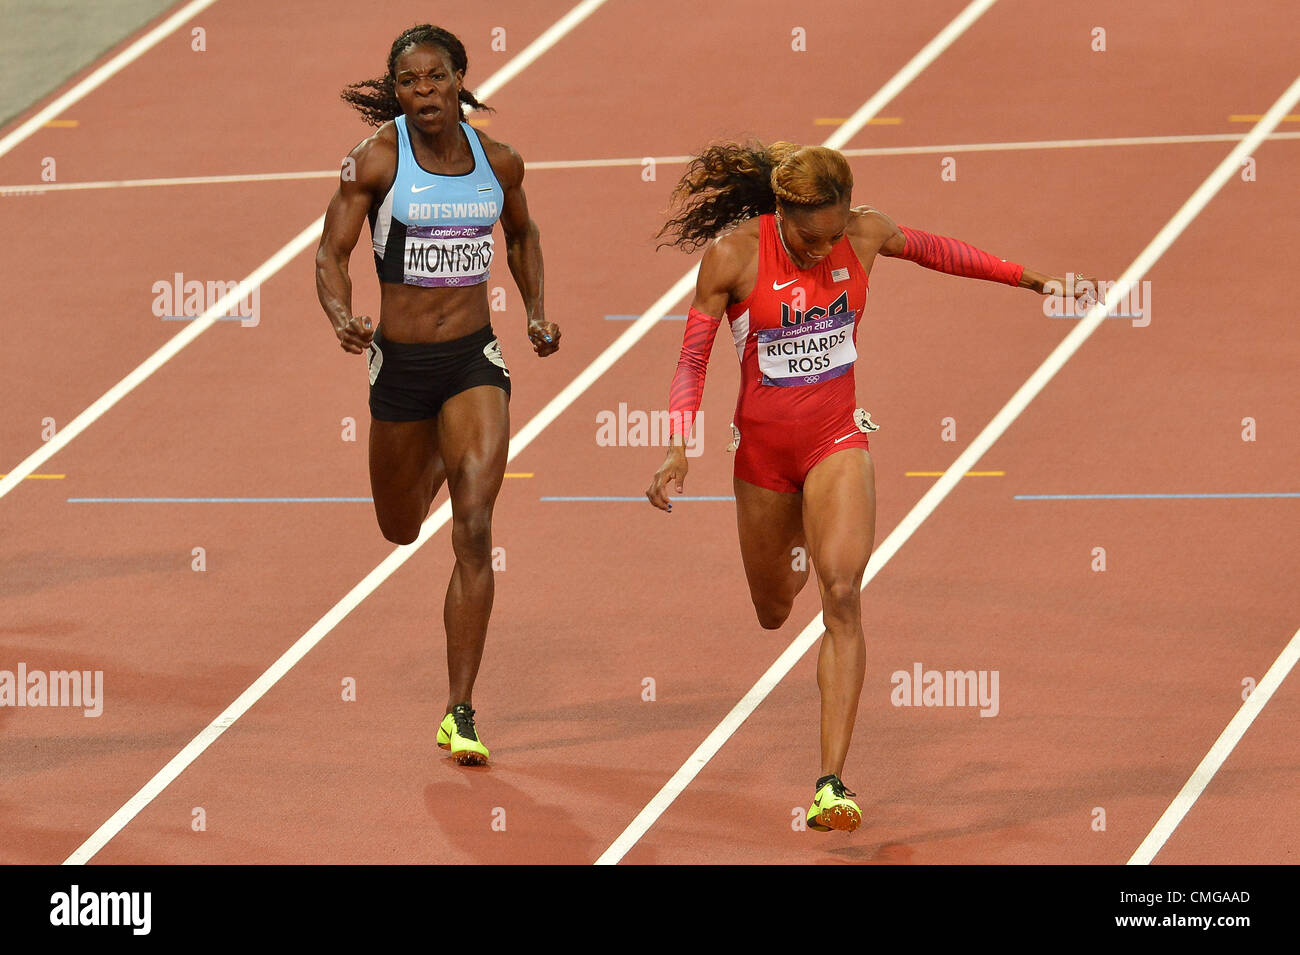 Discussion on this topic: Audra McDonald, sanya-richards-ross-5-olympic-medals/